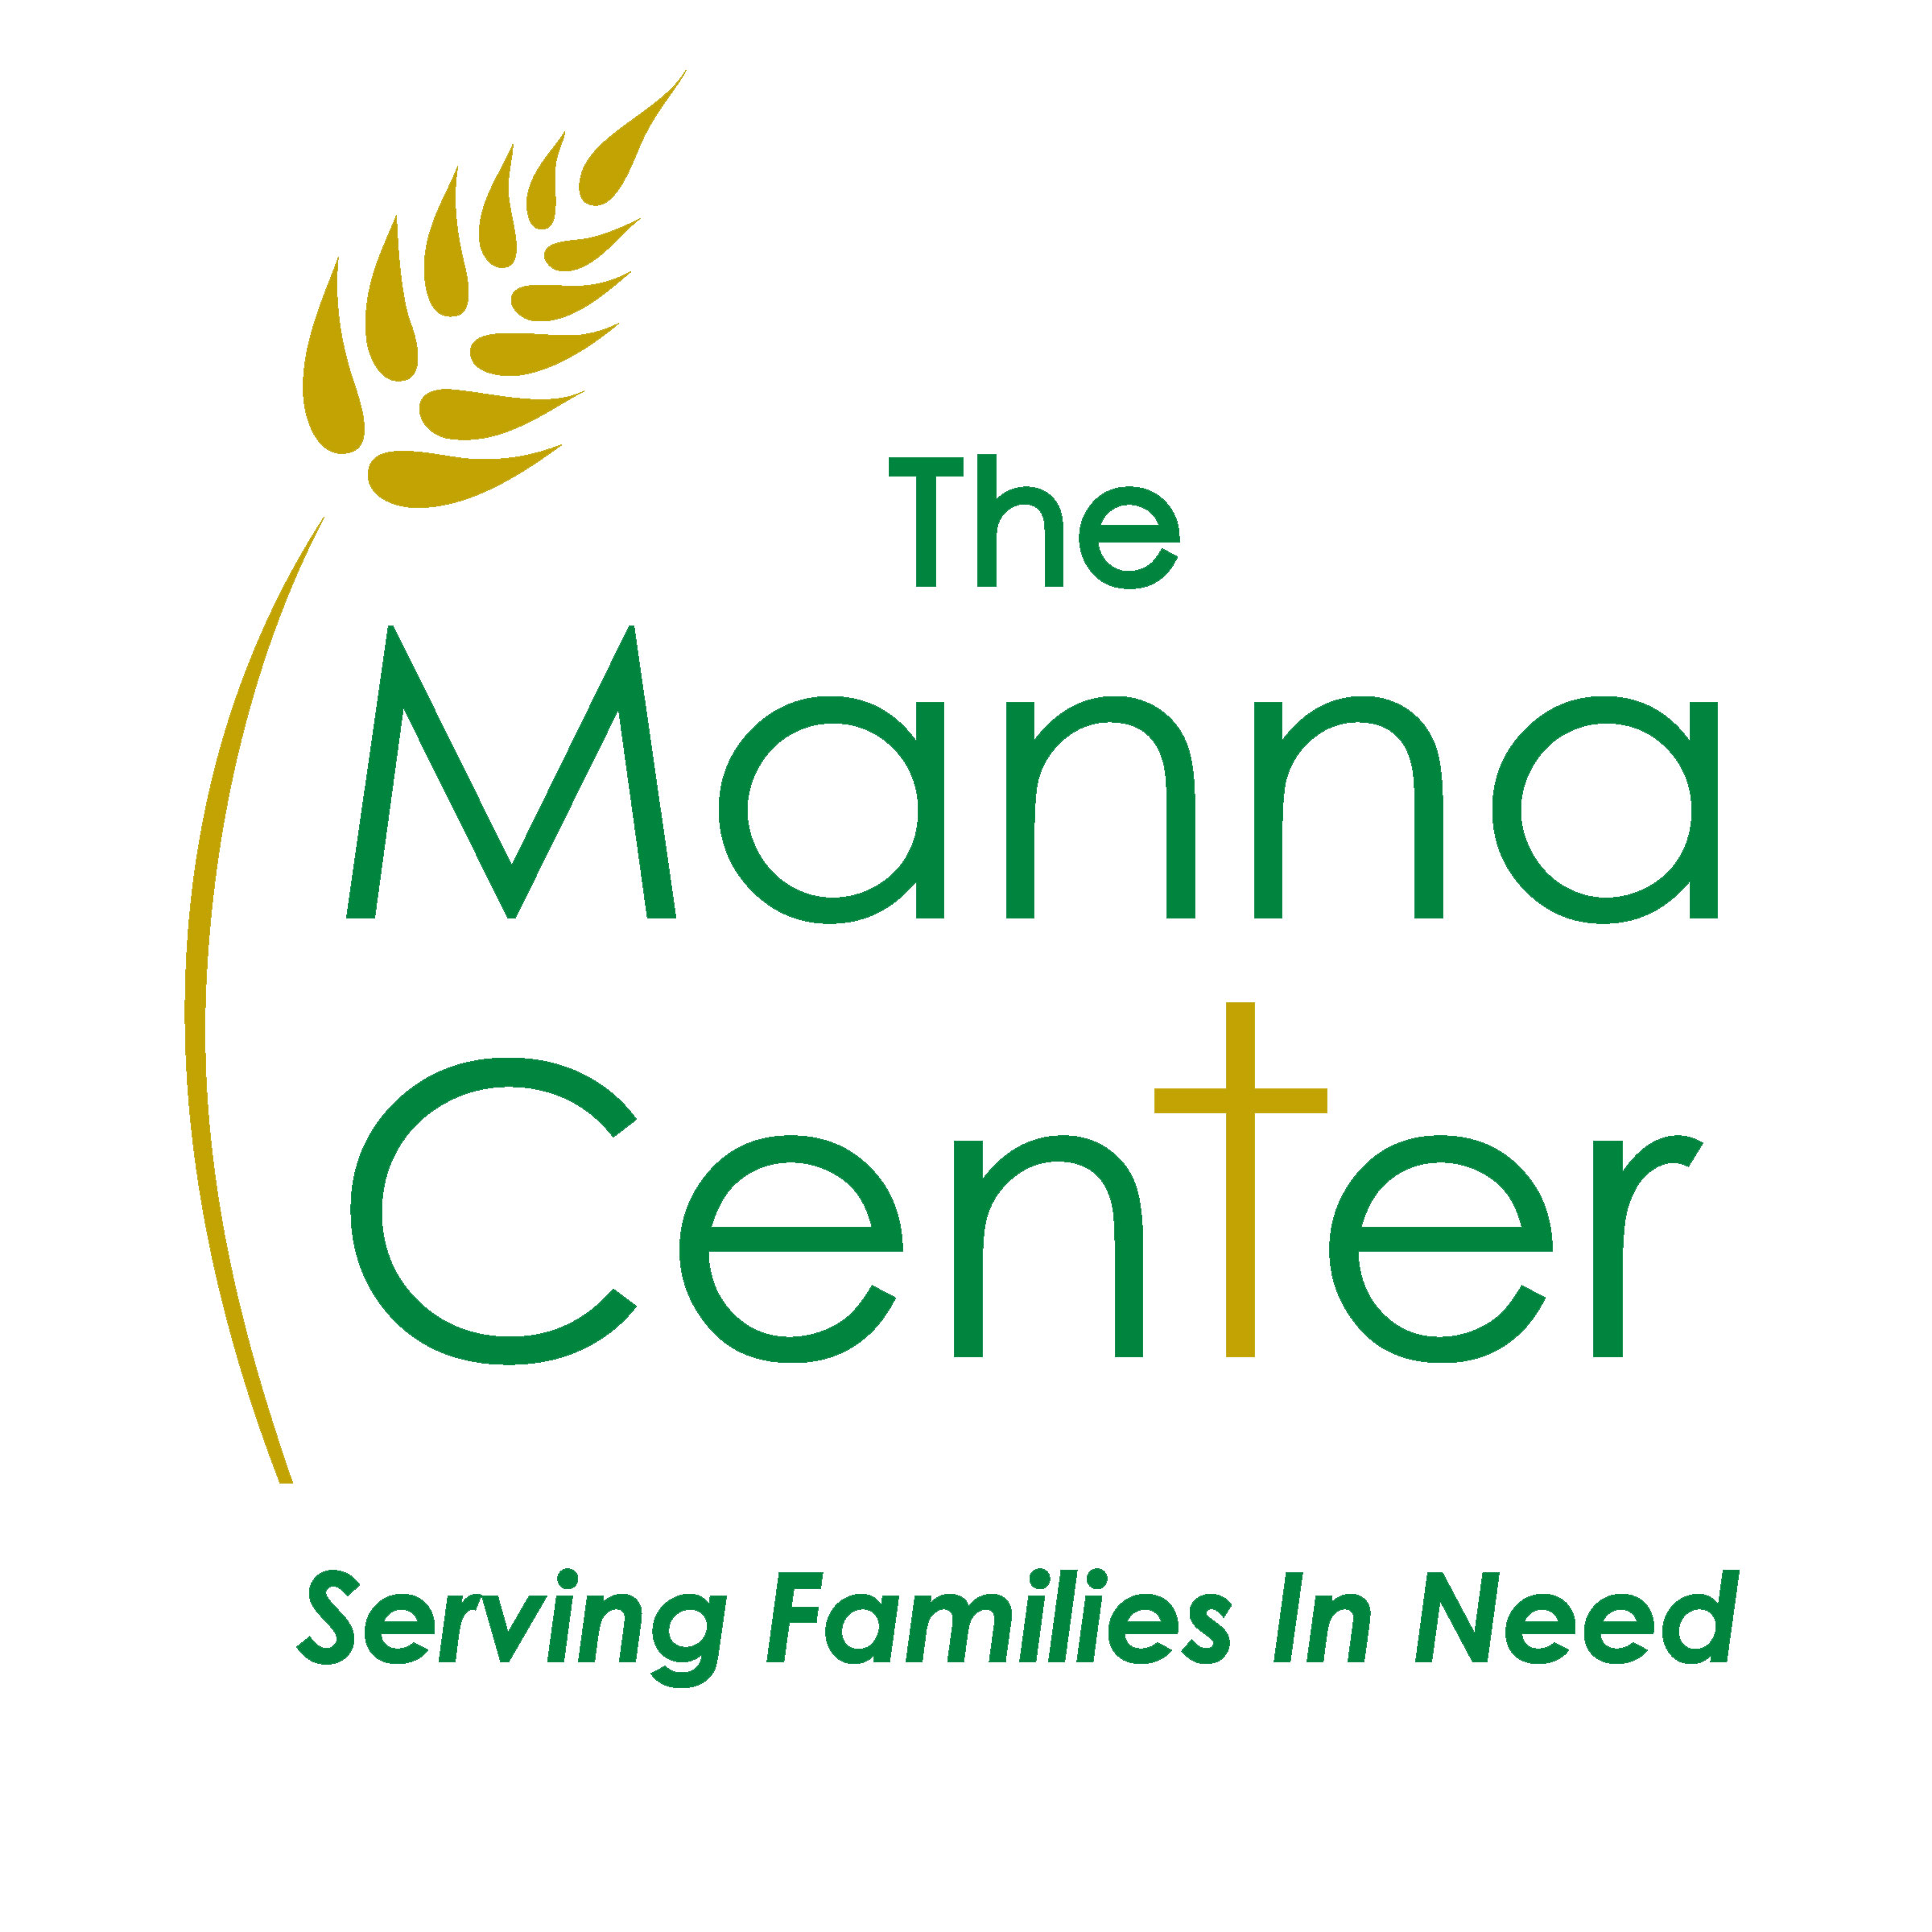 The Manna Center